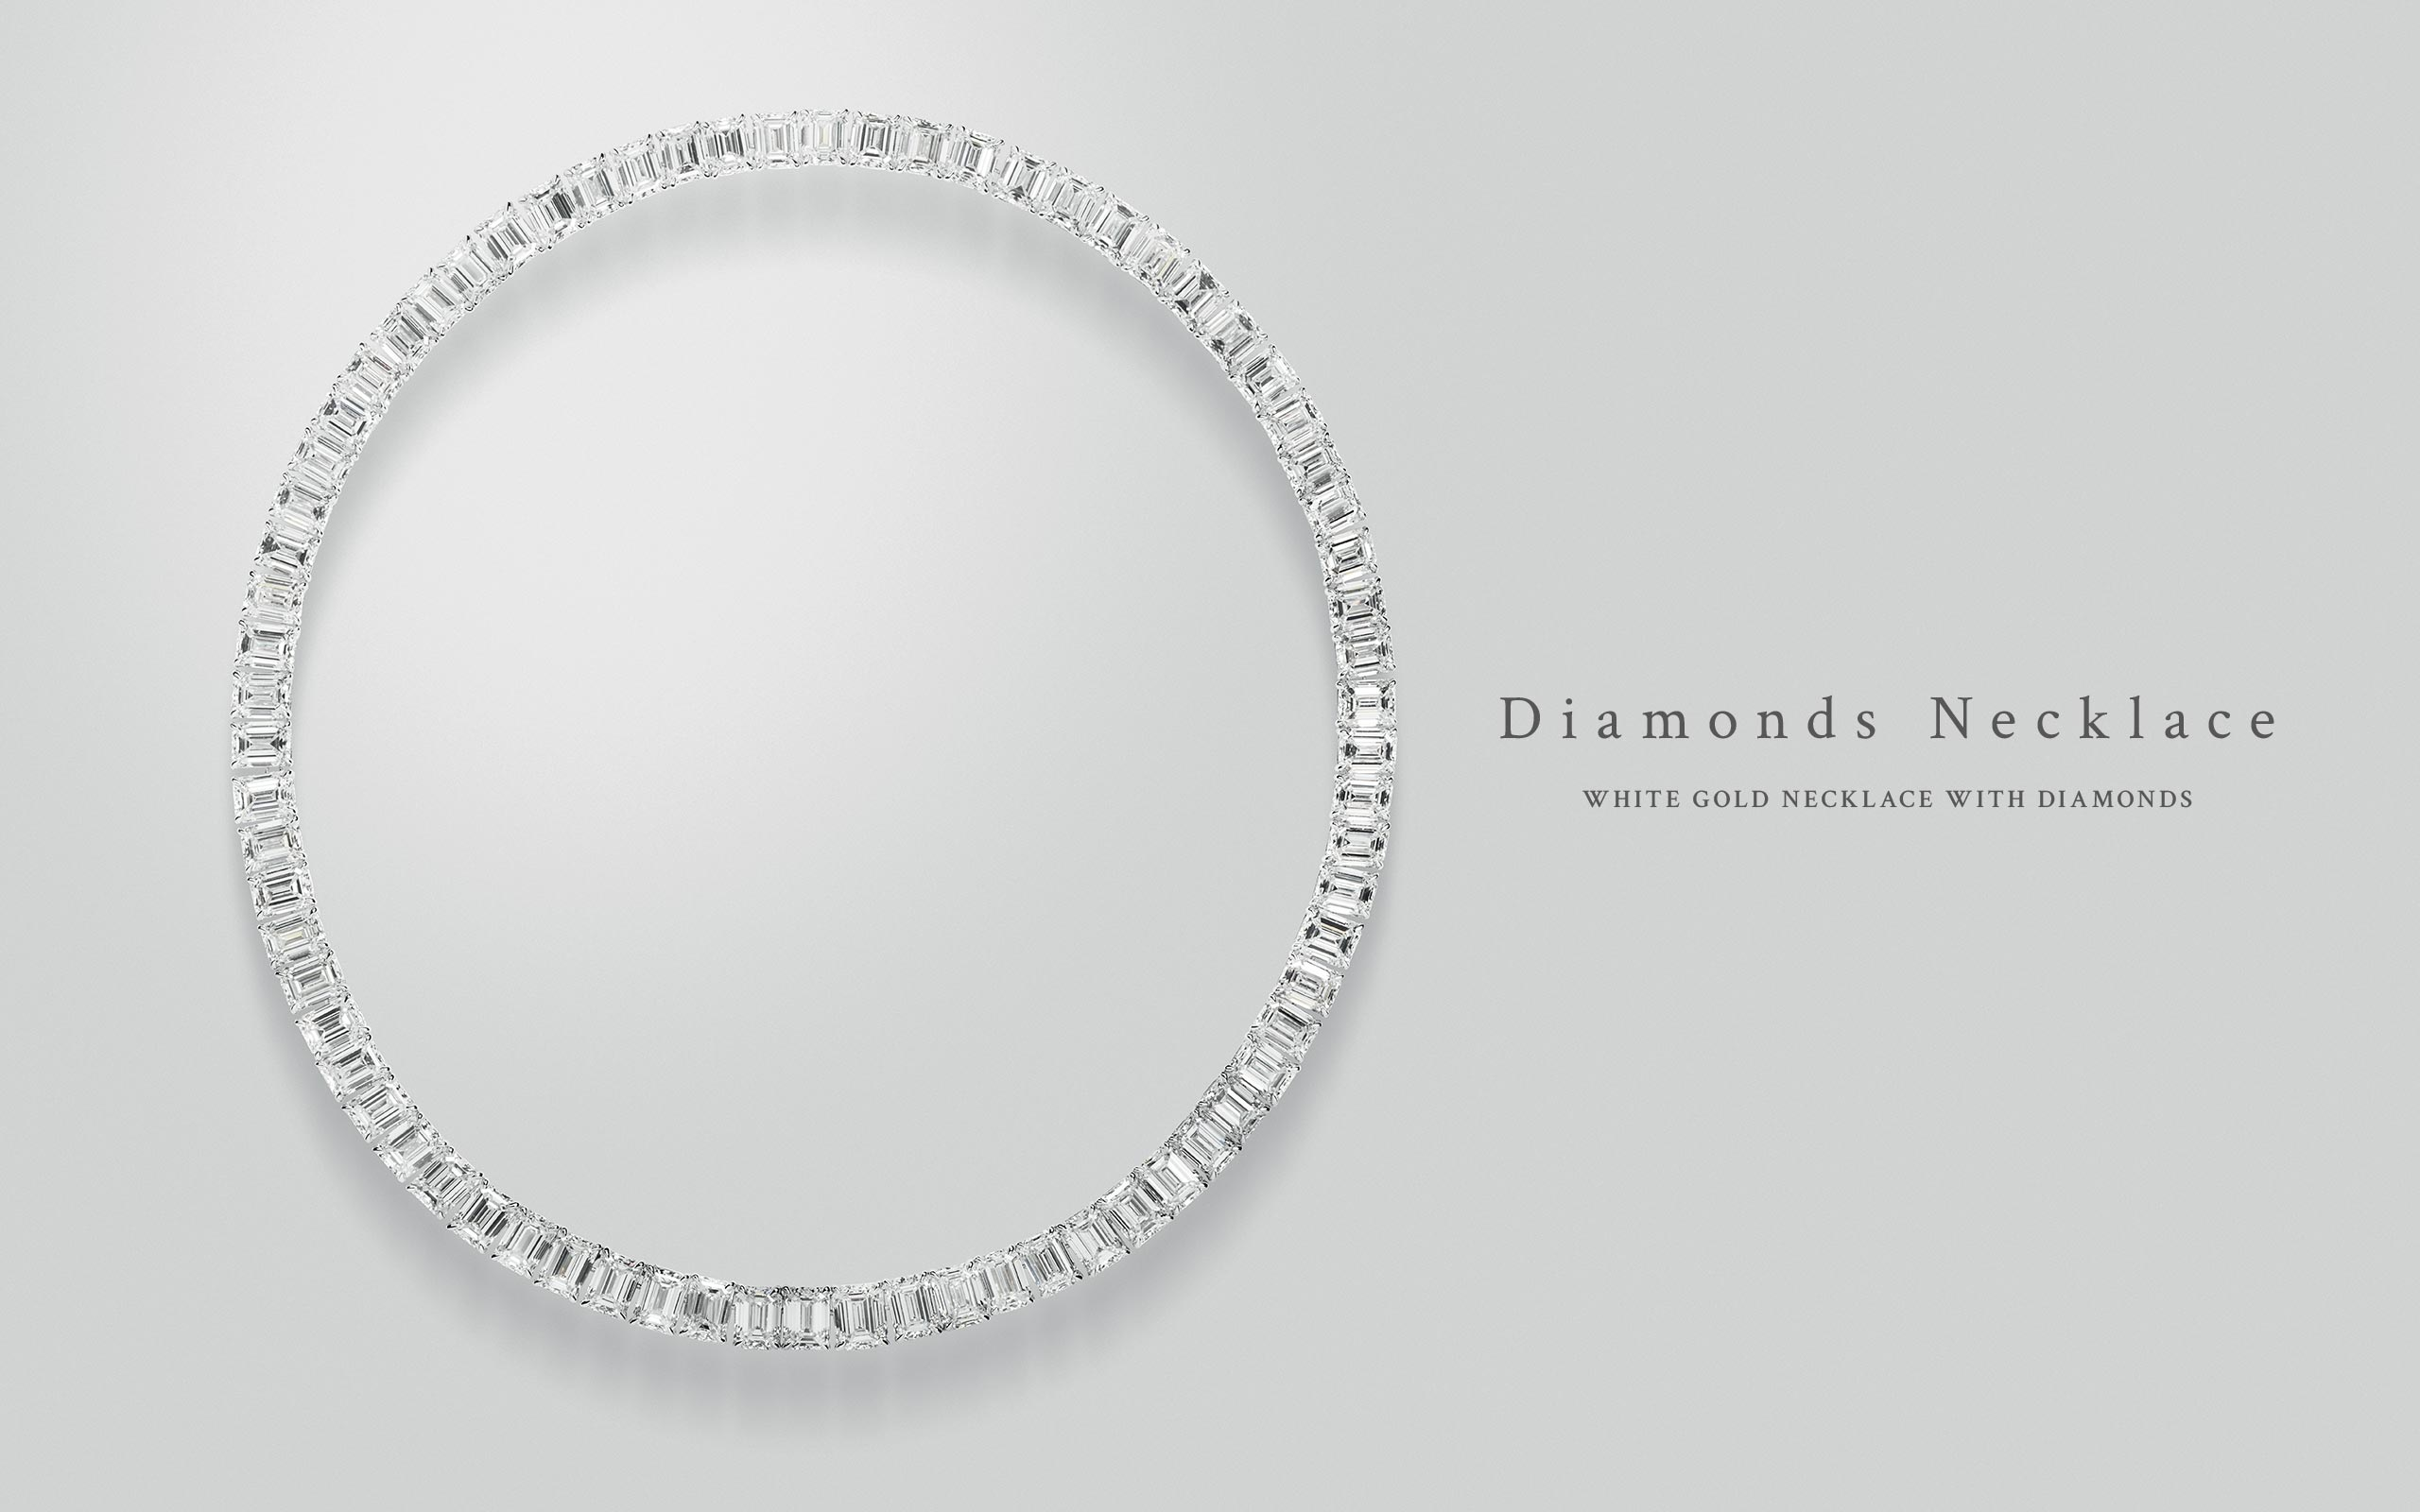 Diamonds Necklace 11 | Maria Gaspari